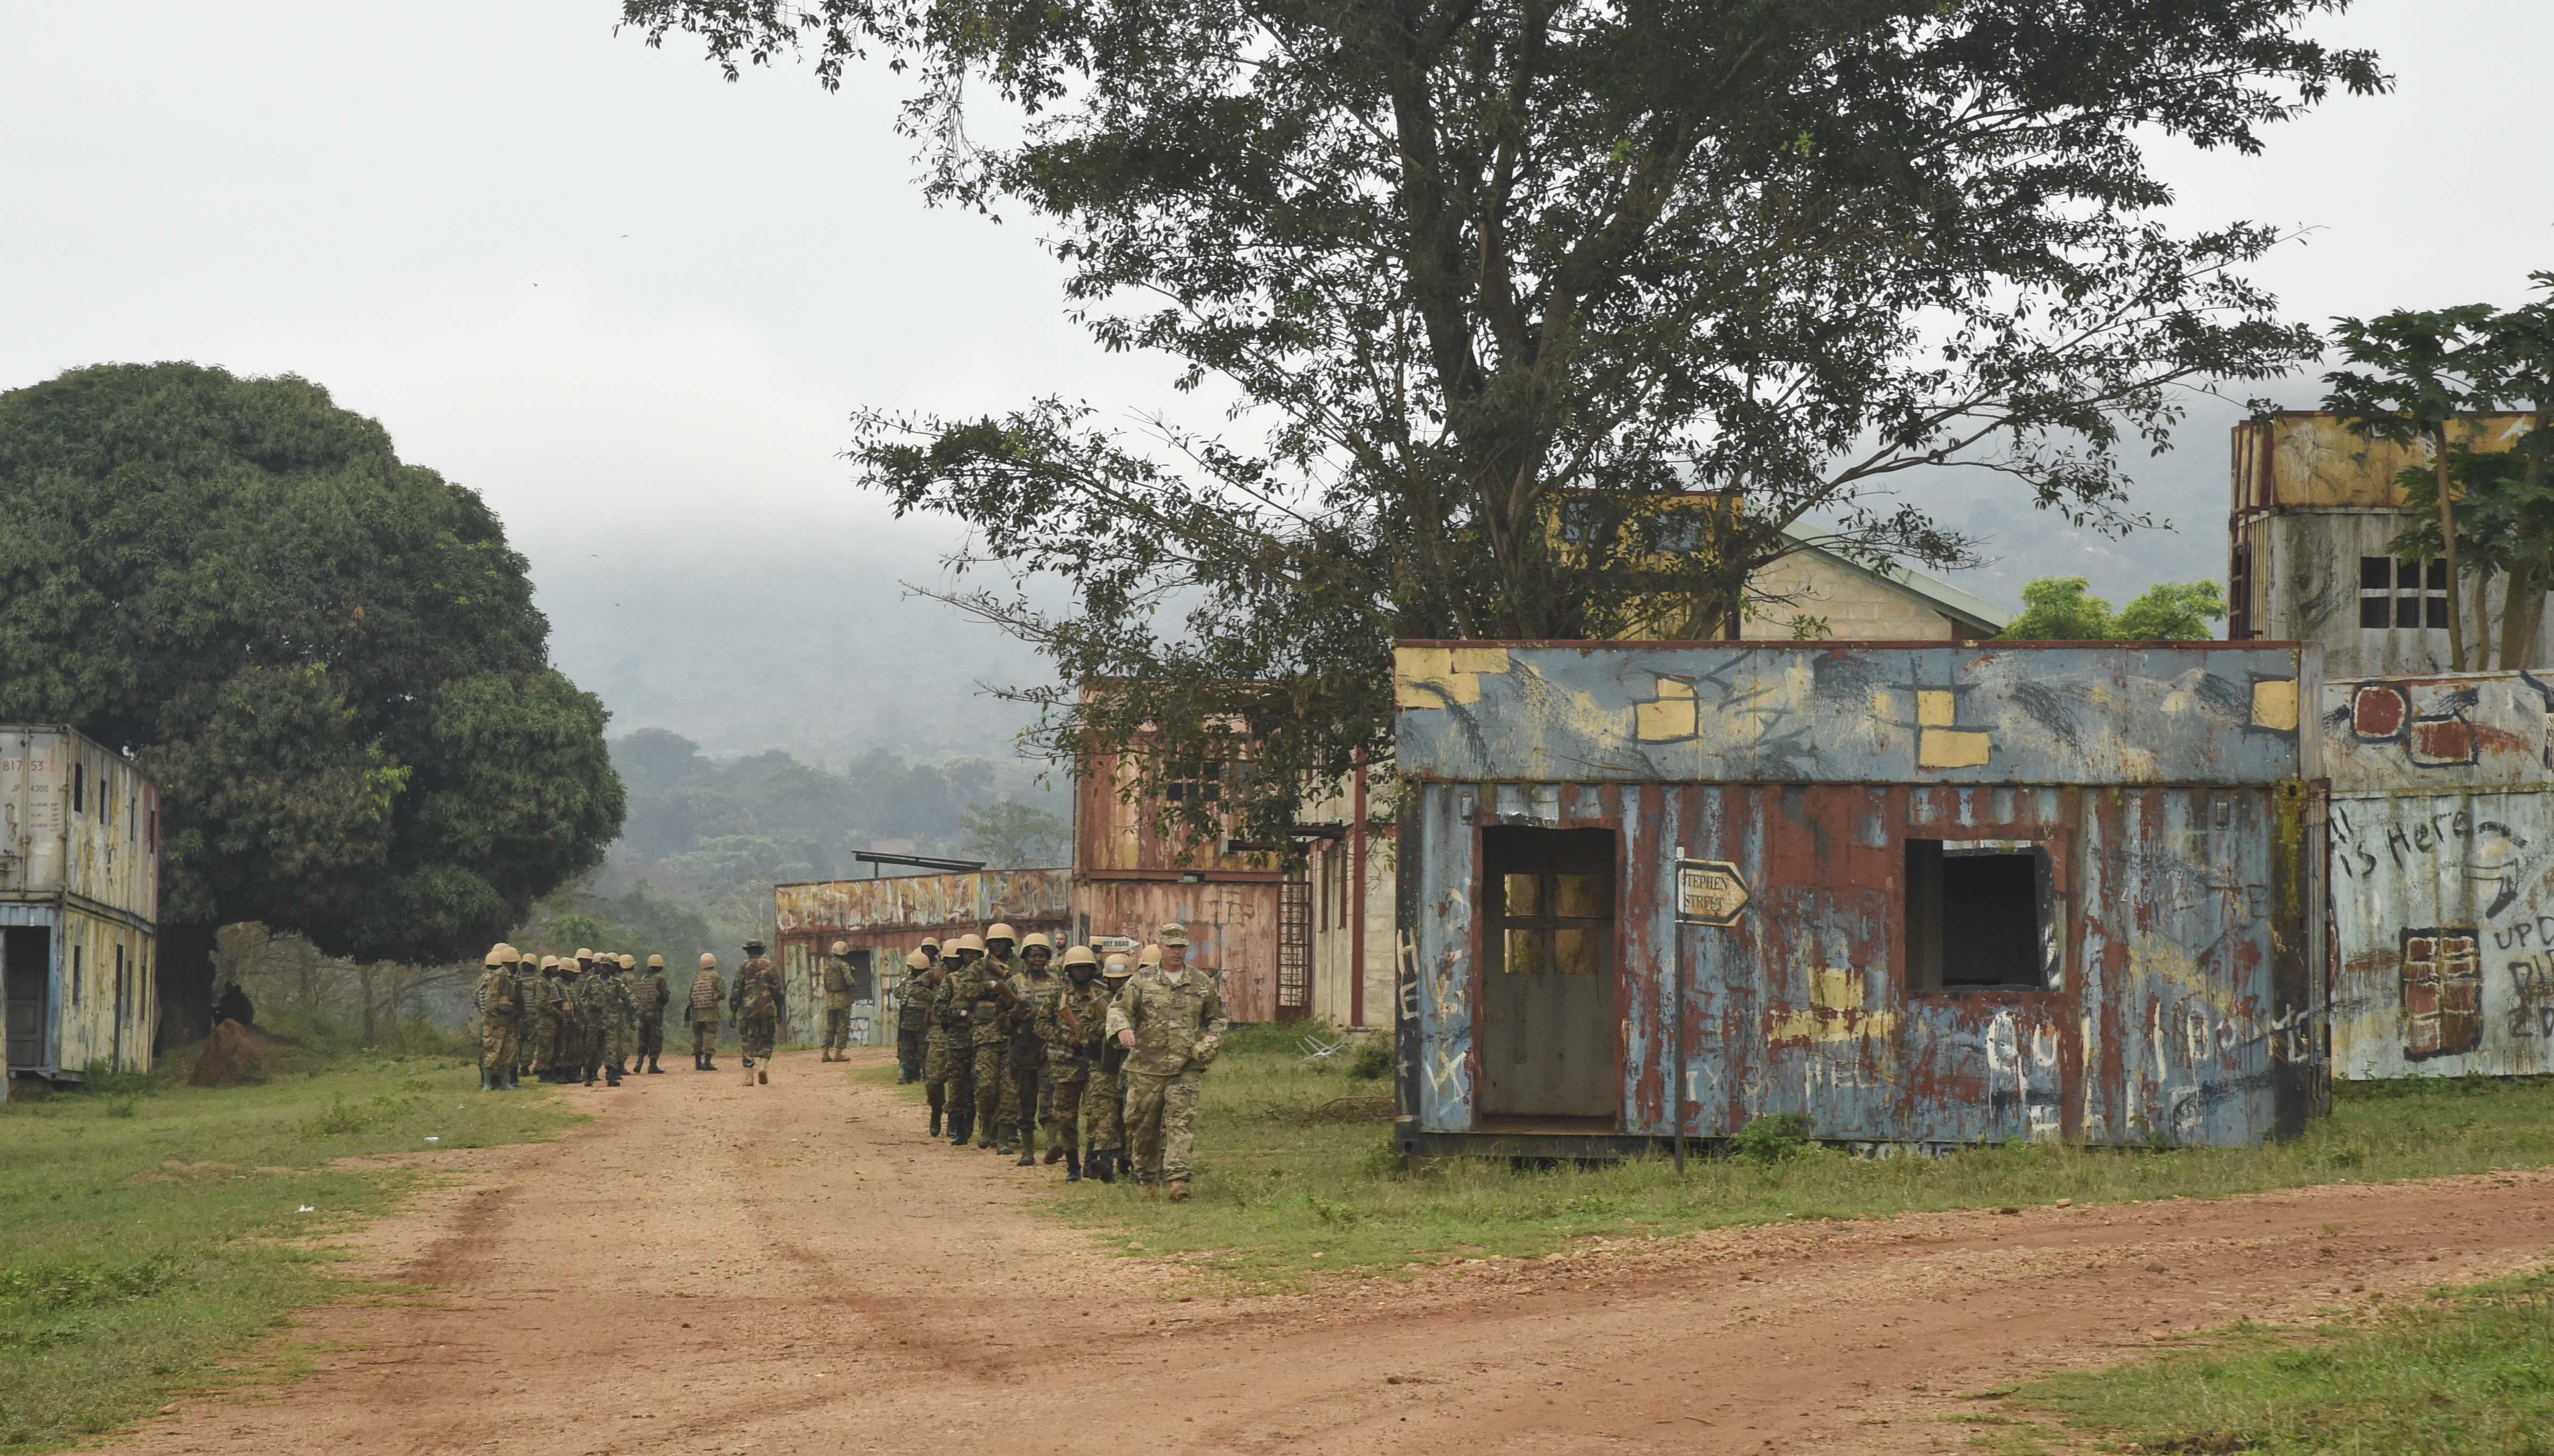 Uganda People's Defense Force (UPDF) soldiers travel between training stations at Camp Singo, Feb. 28, 2017. The training the UPDF receives from allied forces increases their readiness and helps to better prepare forces to respond to issues in their region. (U.S. Air National Guard photo by Staff Sgt. Penny Snoozy)